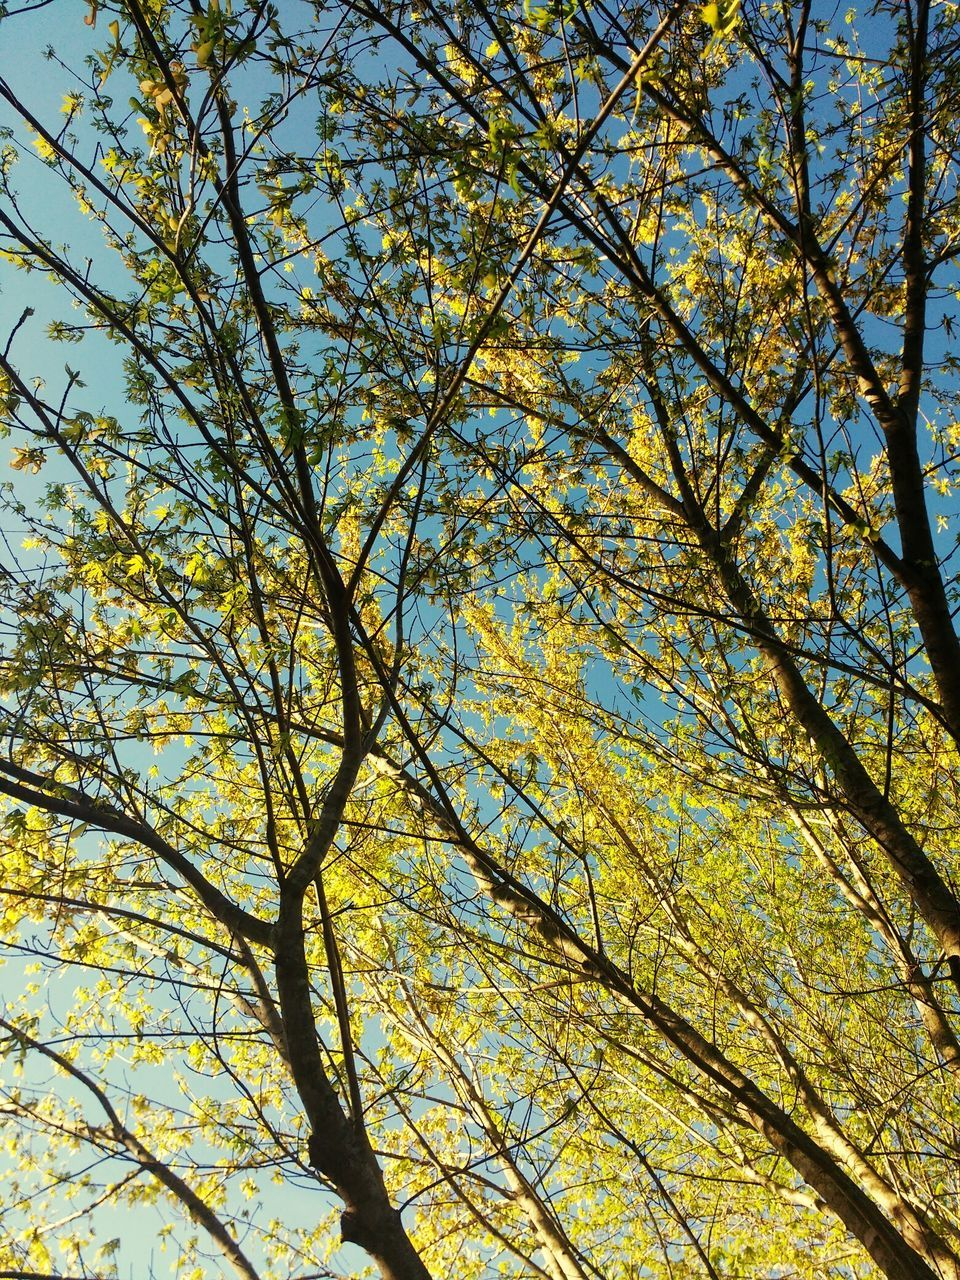 branch, tree, nature, growth, autumn, beauty in nature, low angle view, full frame, backgrounds, day, no people, outdoors, tranquility, yellow, flower, sky, freshness, fragility, close-up